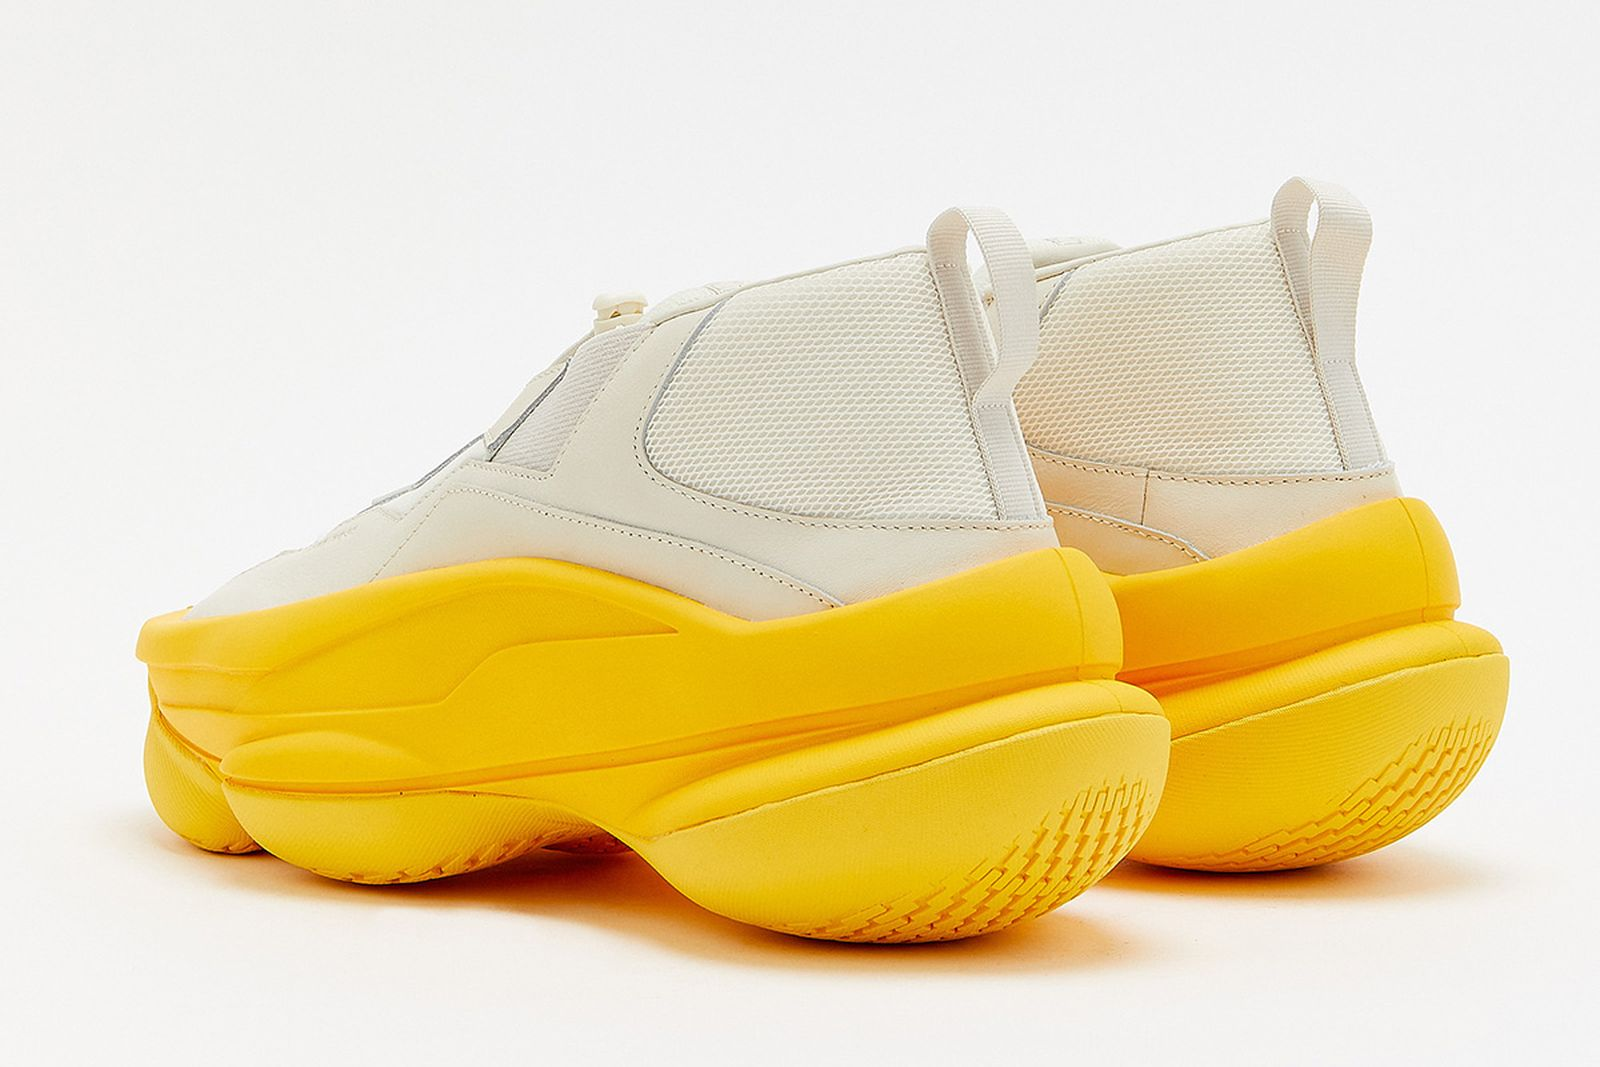 pyer-moss-sculpt-white-yellow-release-date-price-10